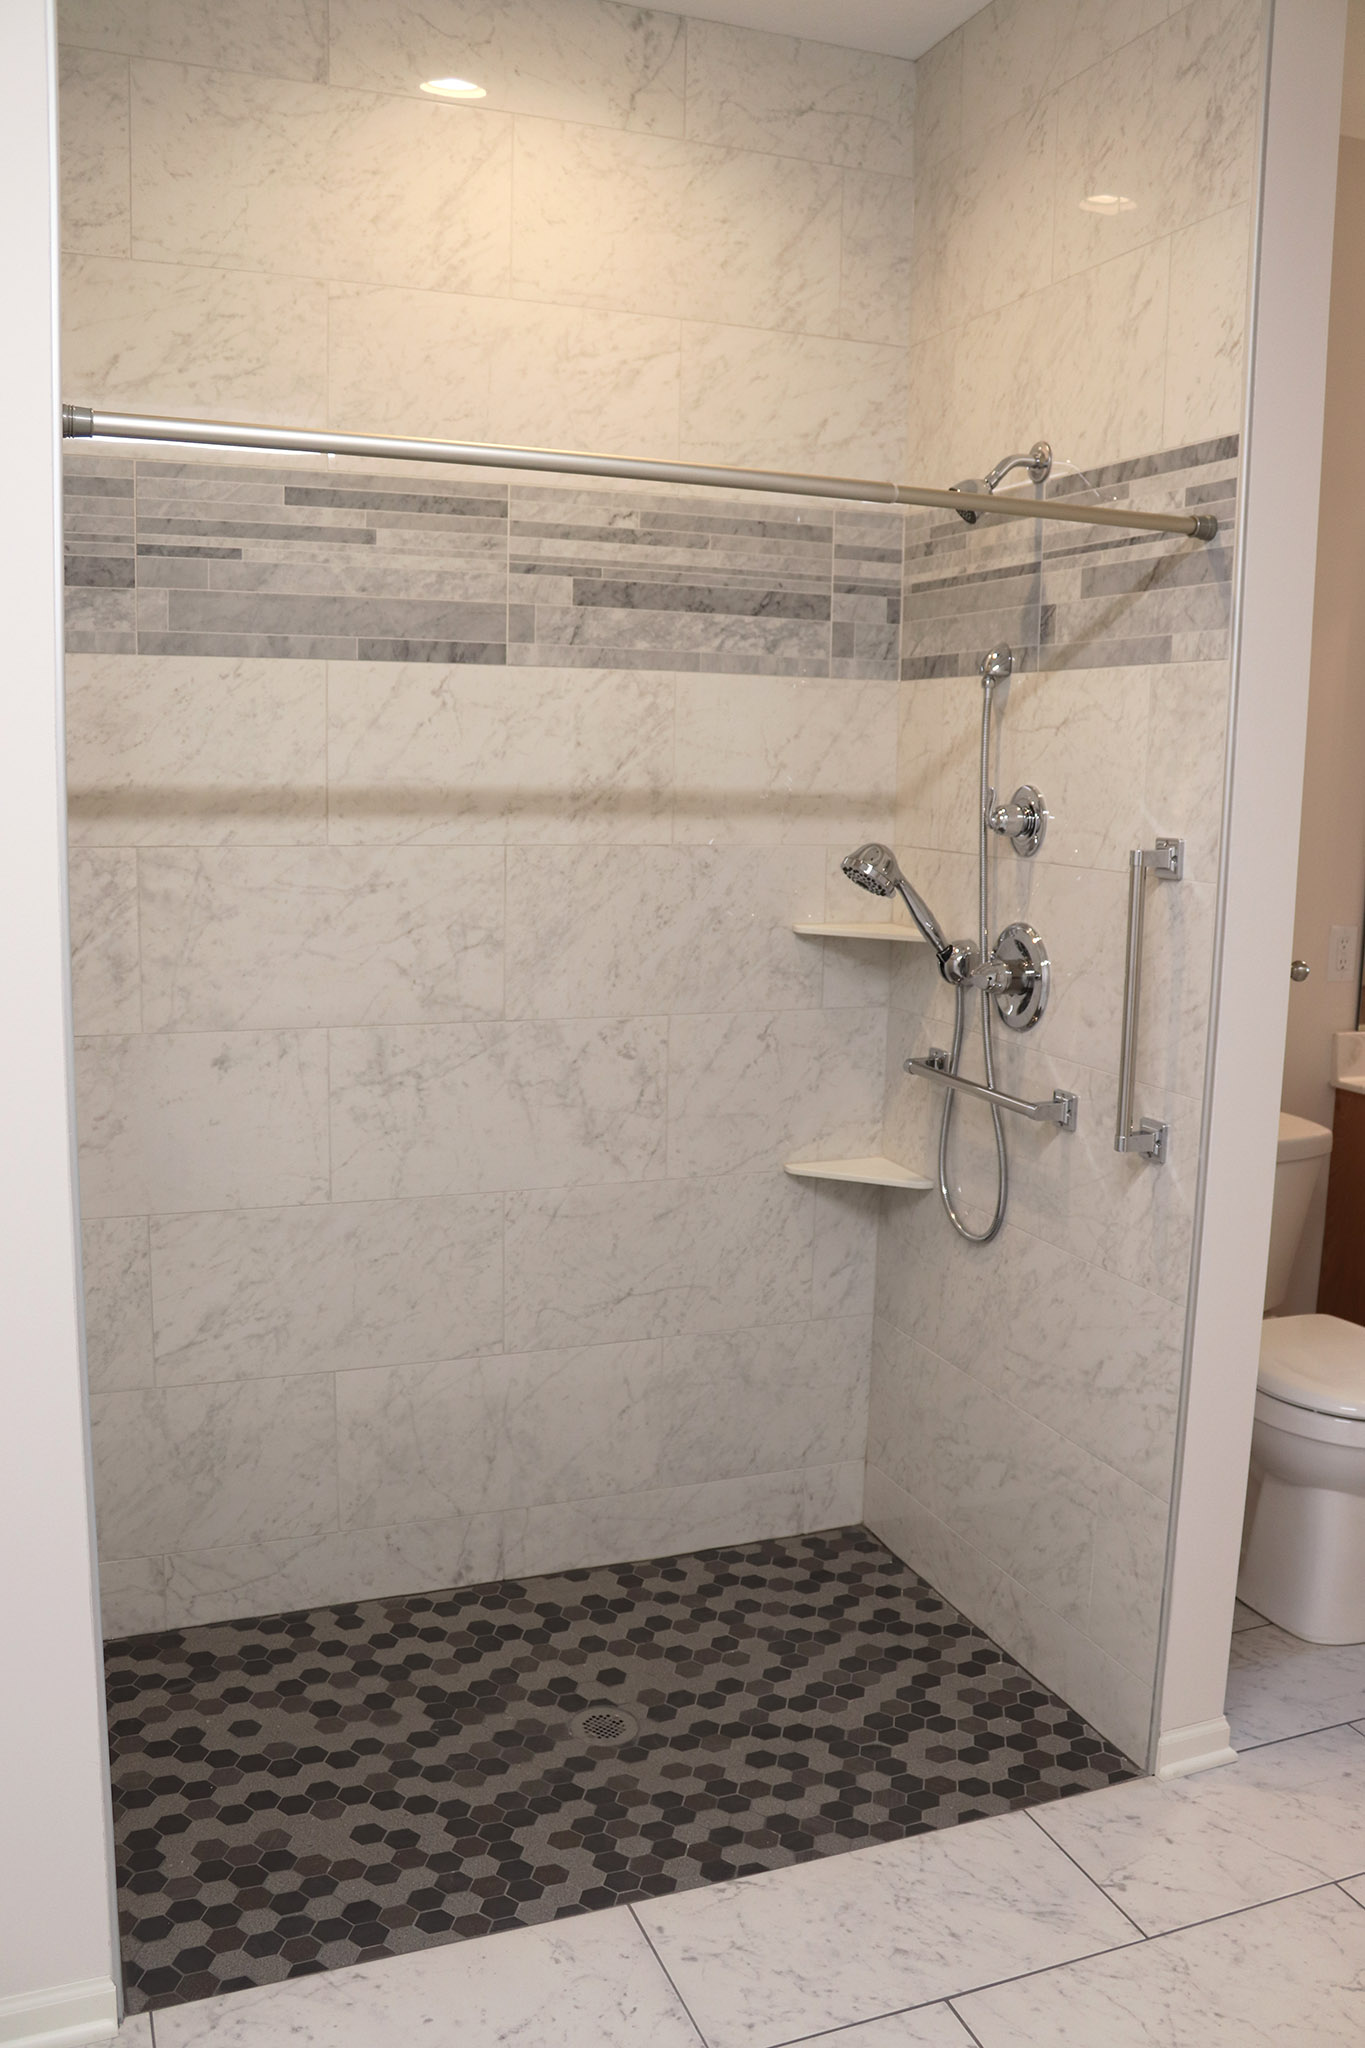 Shower with tile accents and corner shelves